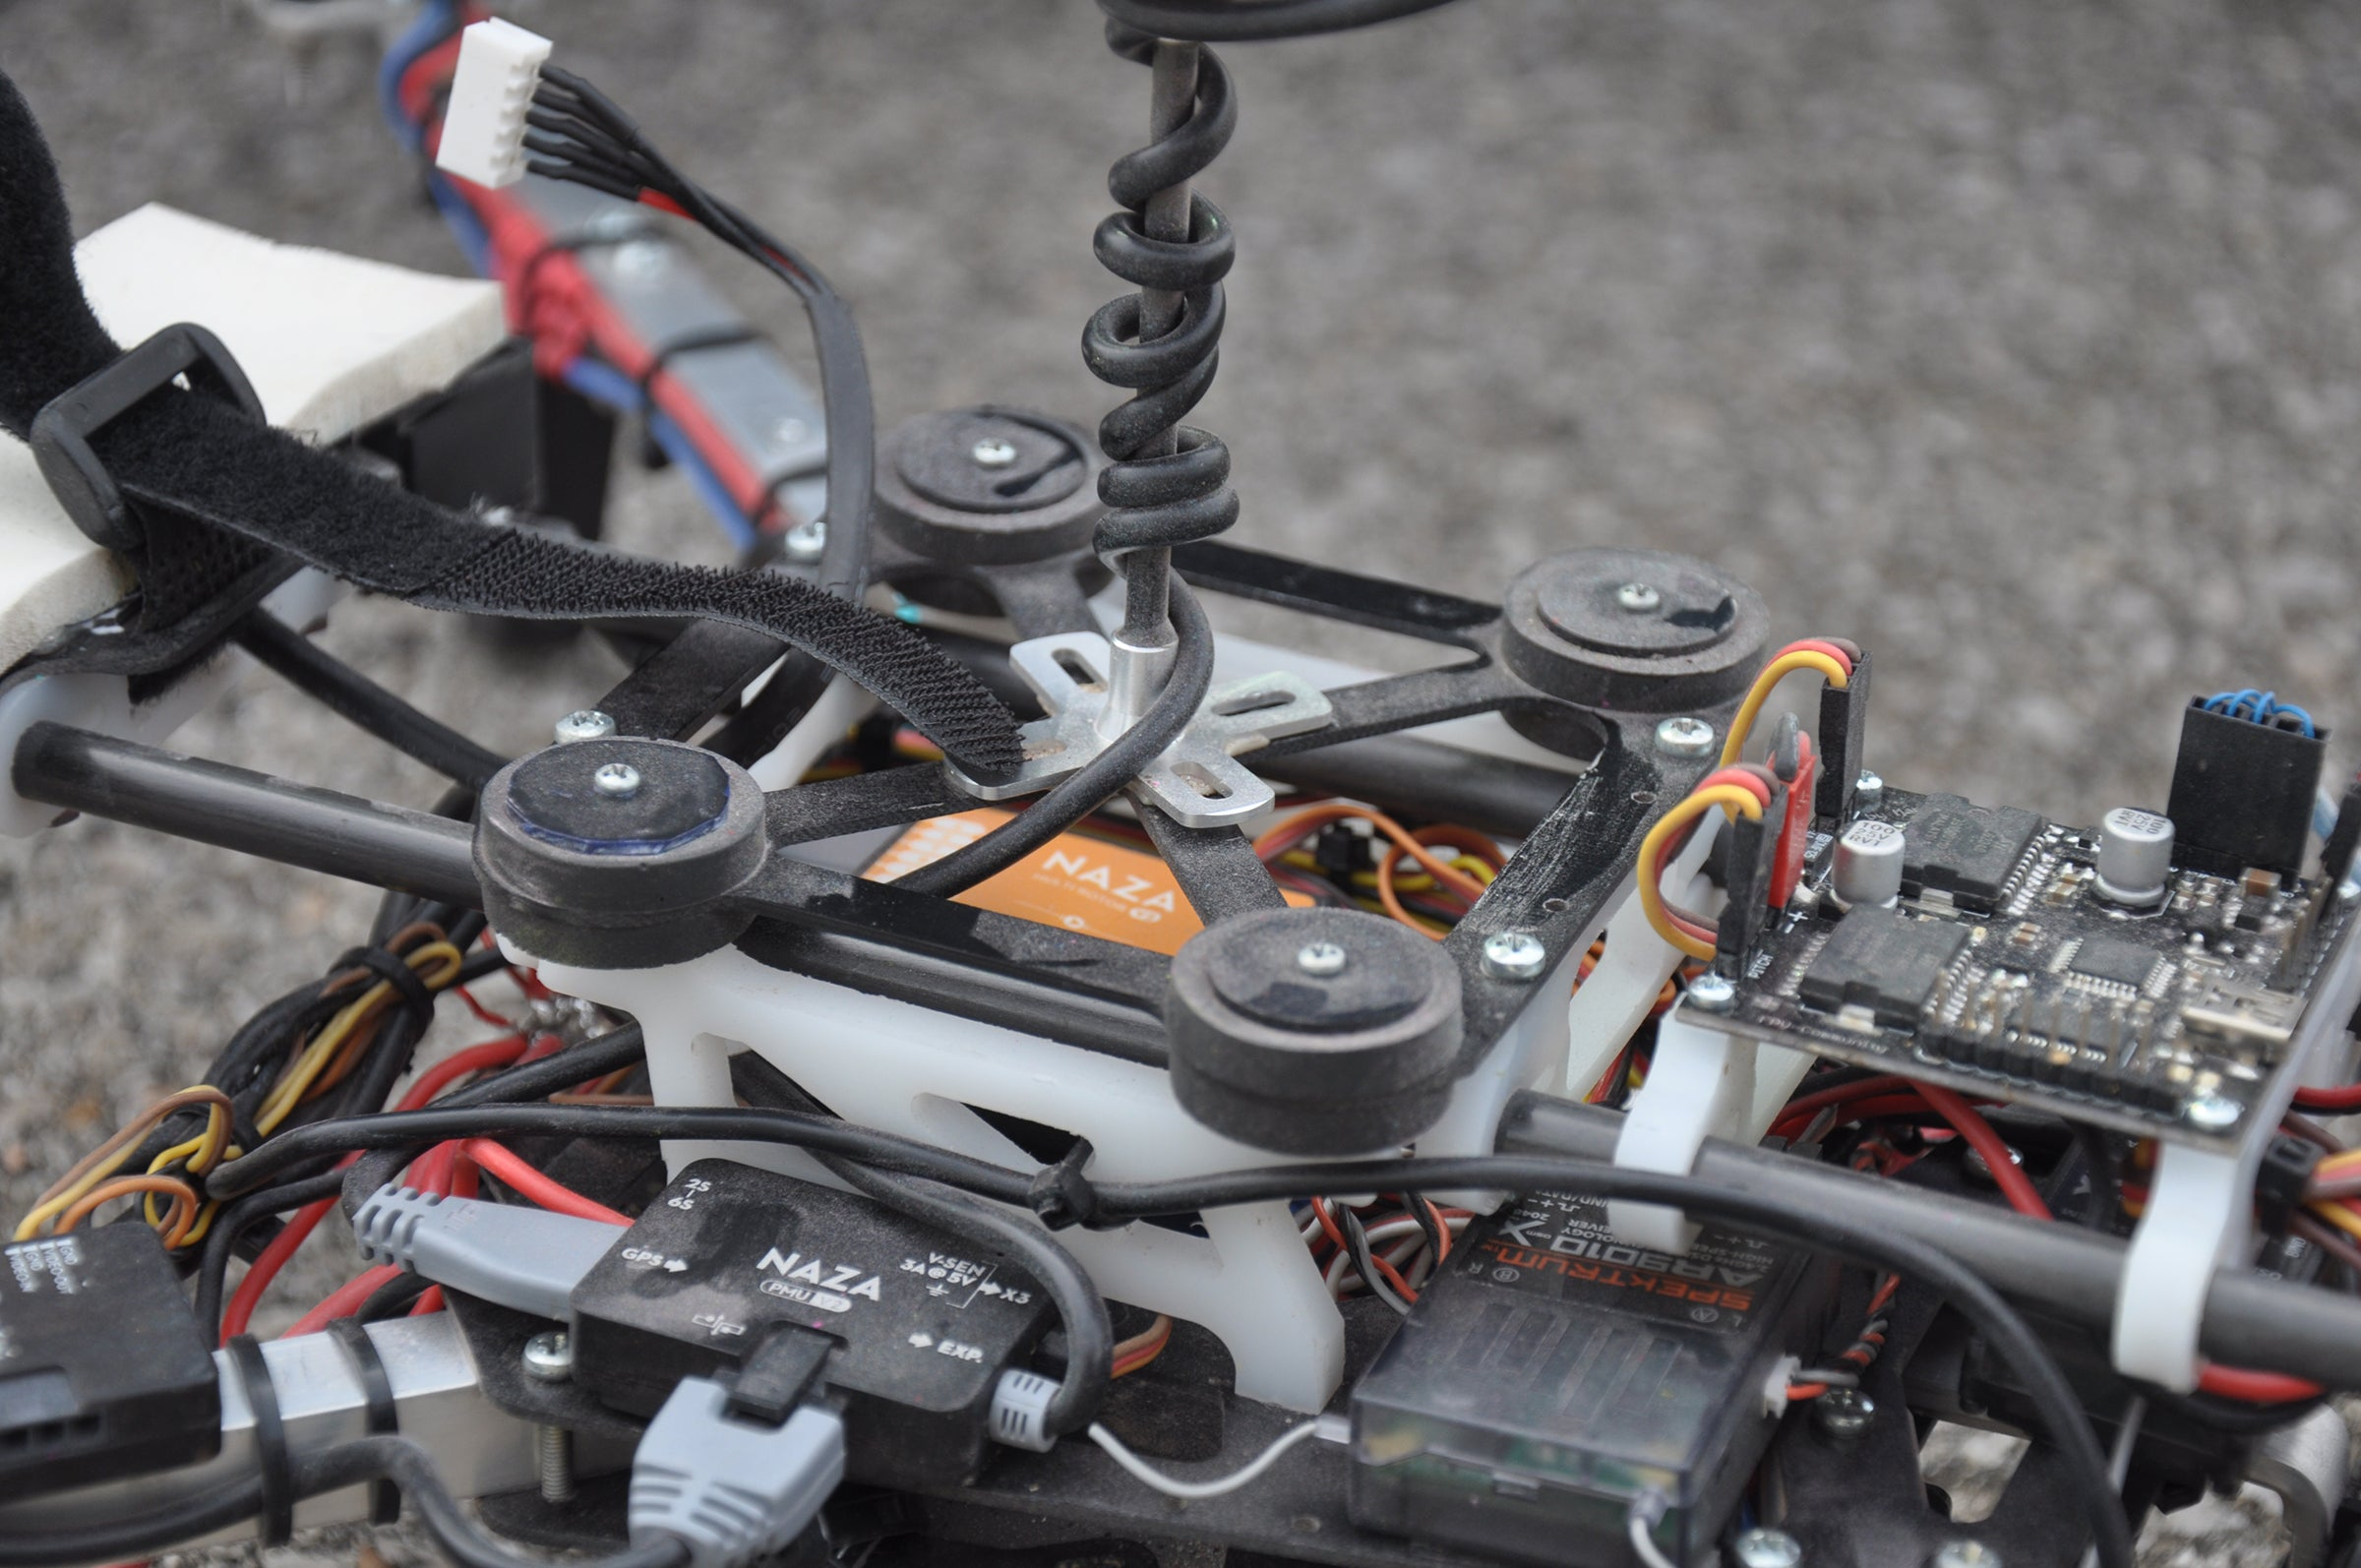 Isolating the camera and GPS of a quadcopter